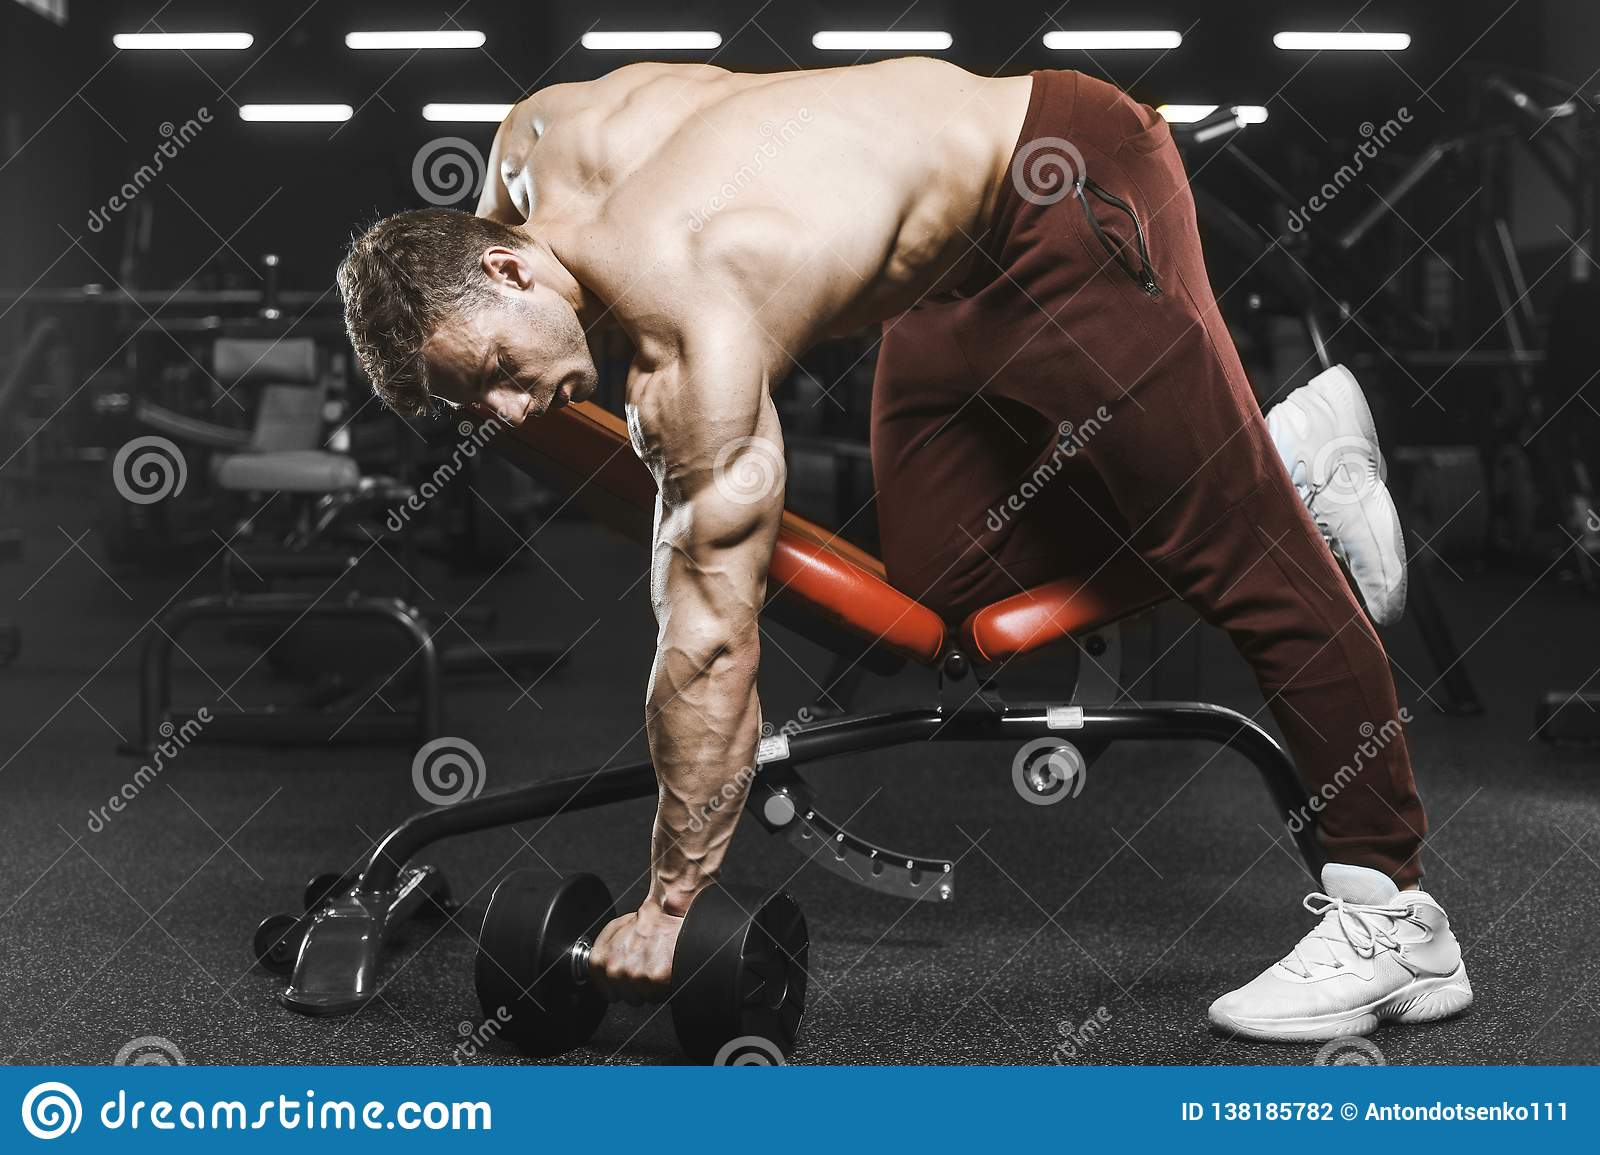 ce5ab2b6e70 Handsome strong athletic man pumping up muscles workout barbell curl bodybuilding  concept background - muscular bodybuilder man doing exercises in gym naked  ...